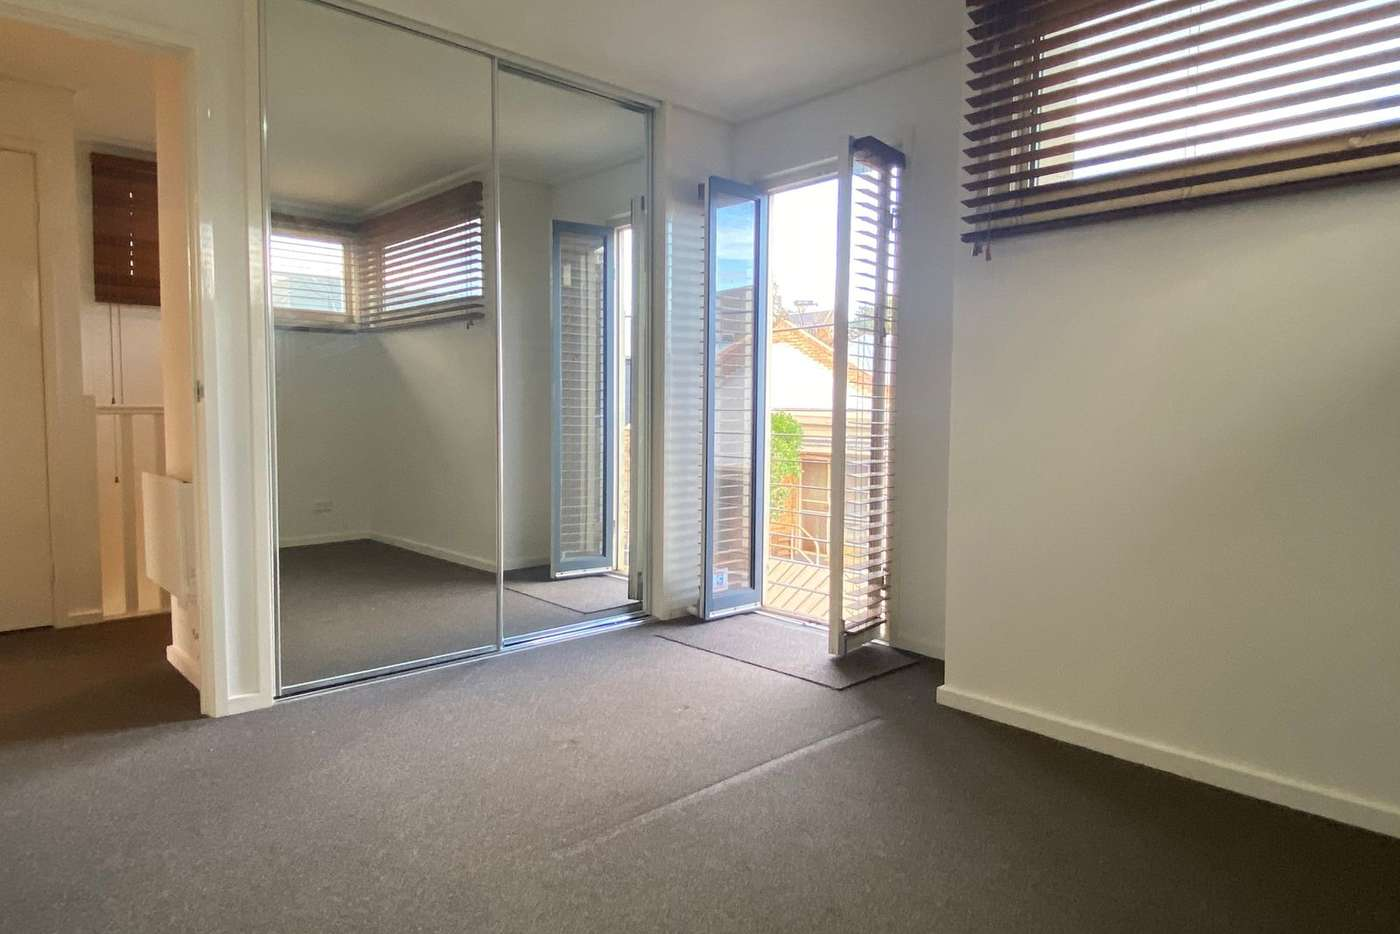 Sixth view of Homely house listing, 4 Byron Street, North Melbourne VIC 3051